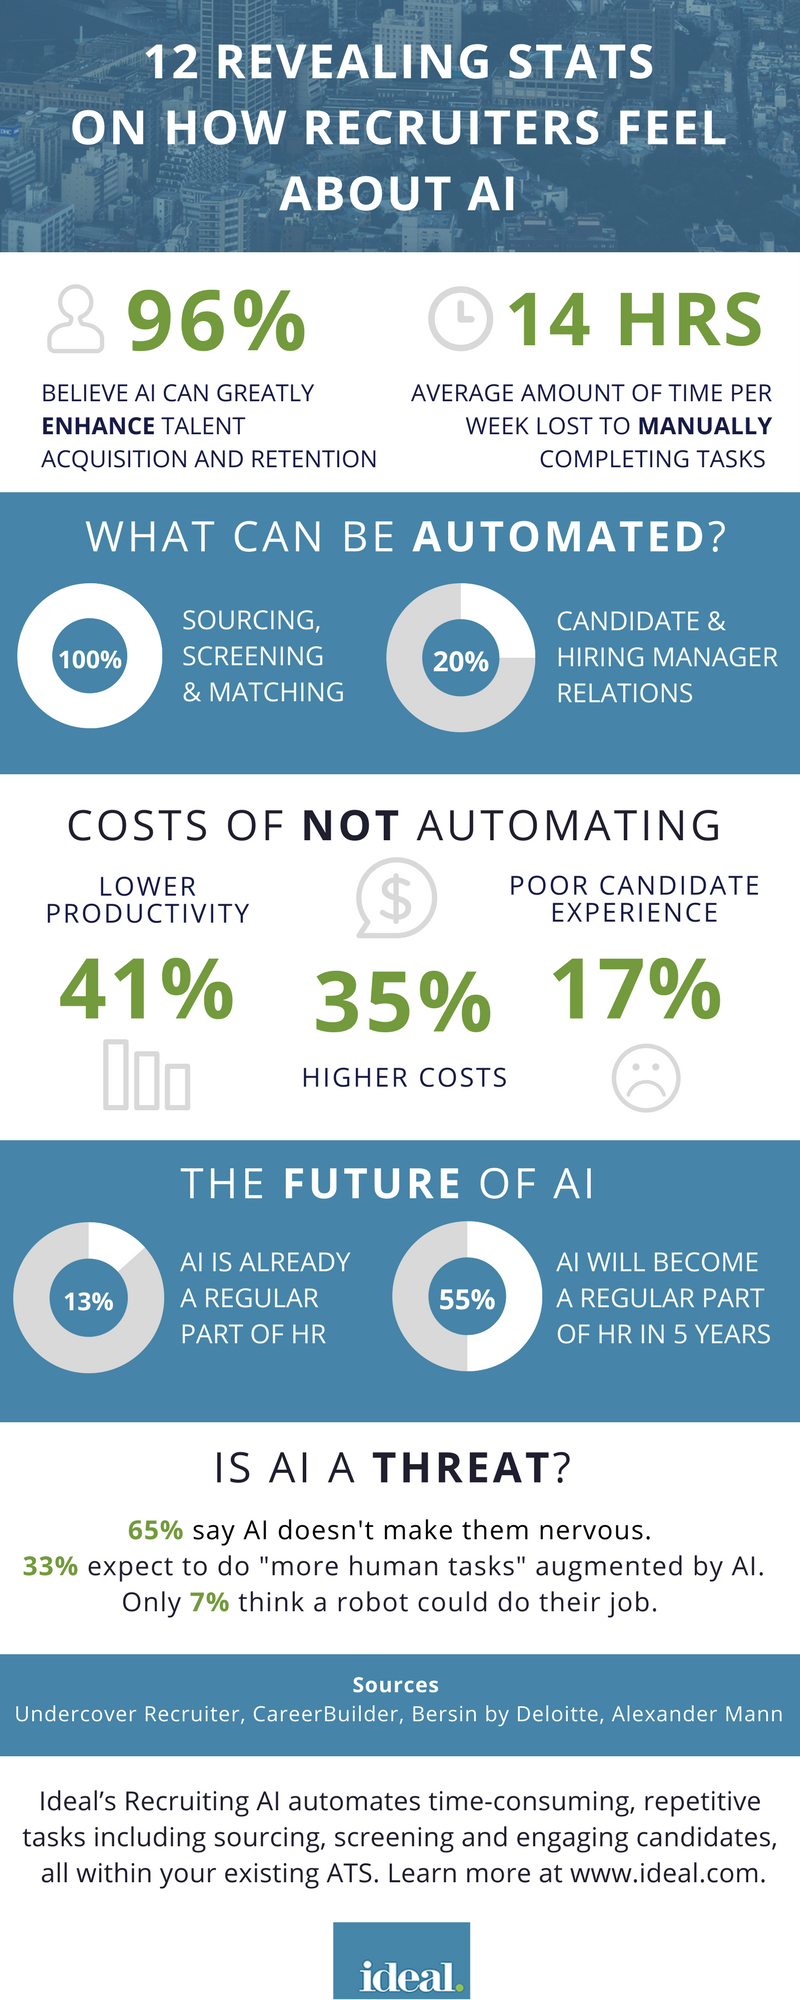 12 Revealing Stats On How Recruiters Feel About AI [Infographic]